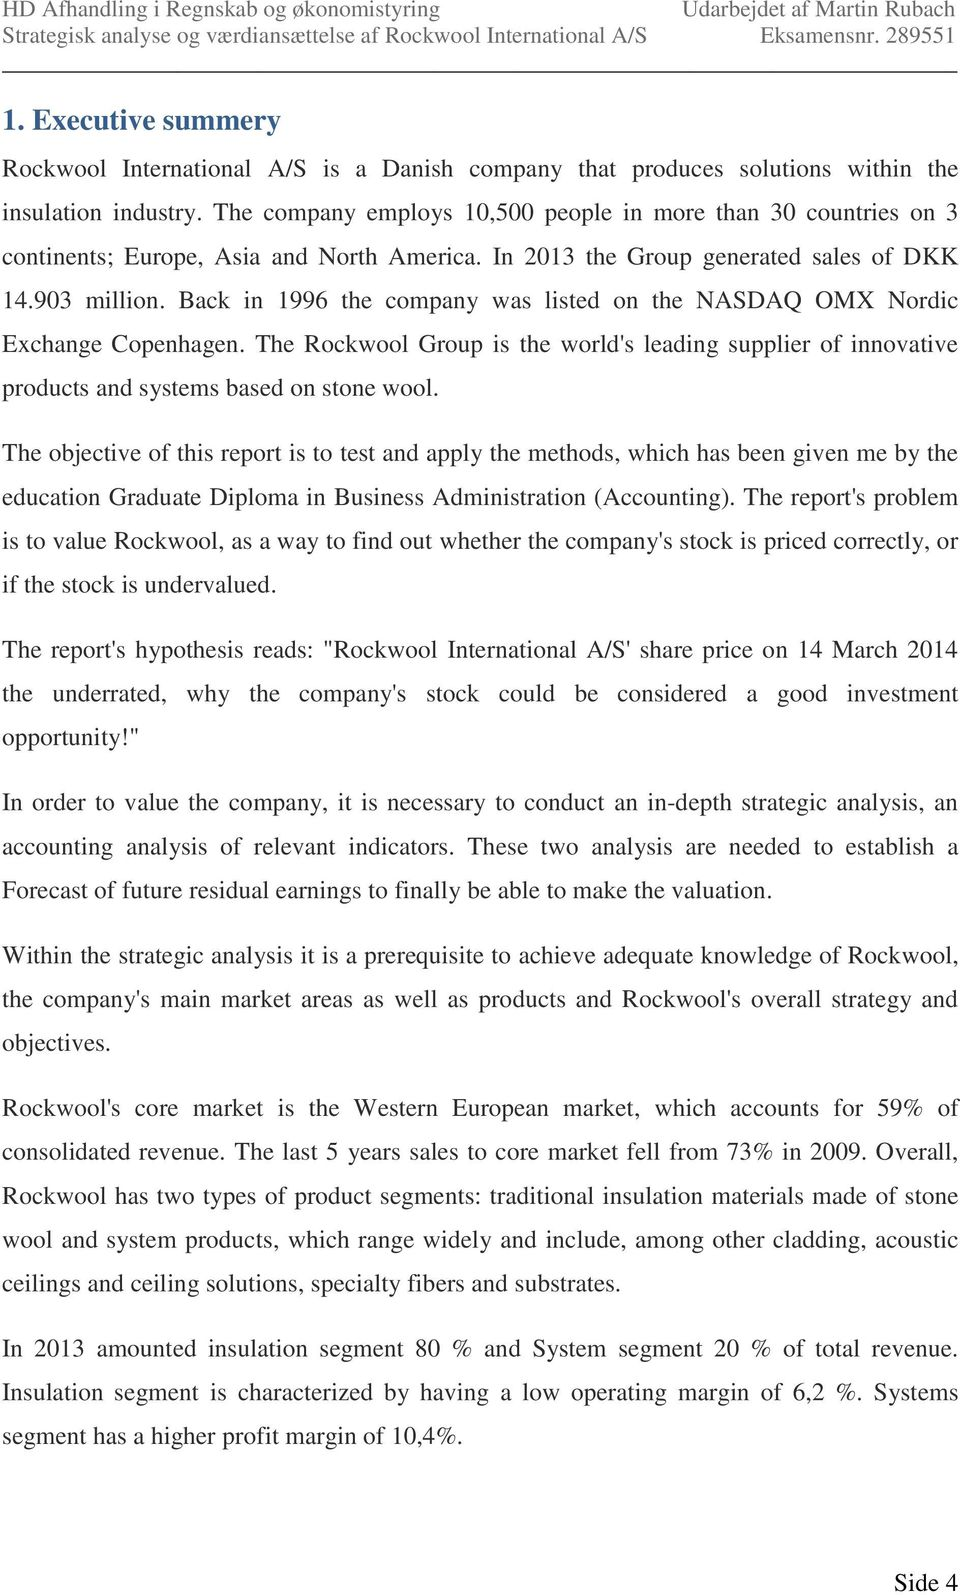 Back in 1996 the company was listed on the NASDAQ OMX Nordic Exchange Copenhagen. The Rockwool Group is the world's leading supplier of innovative products and systems based on stone wool.